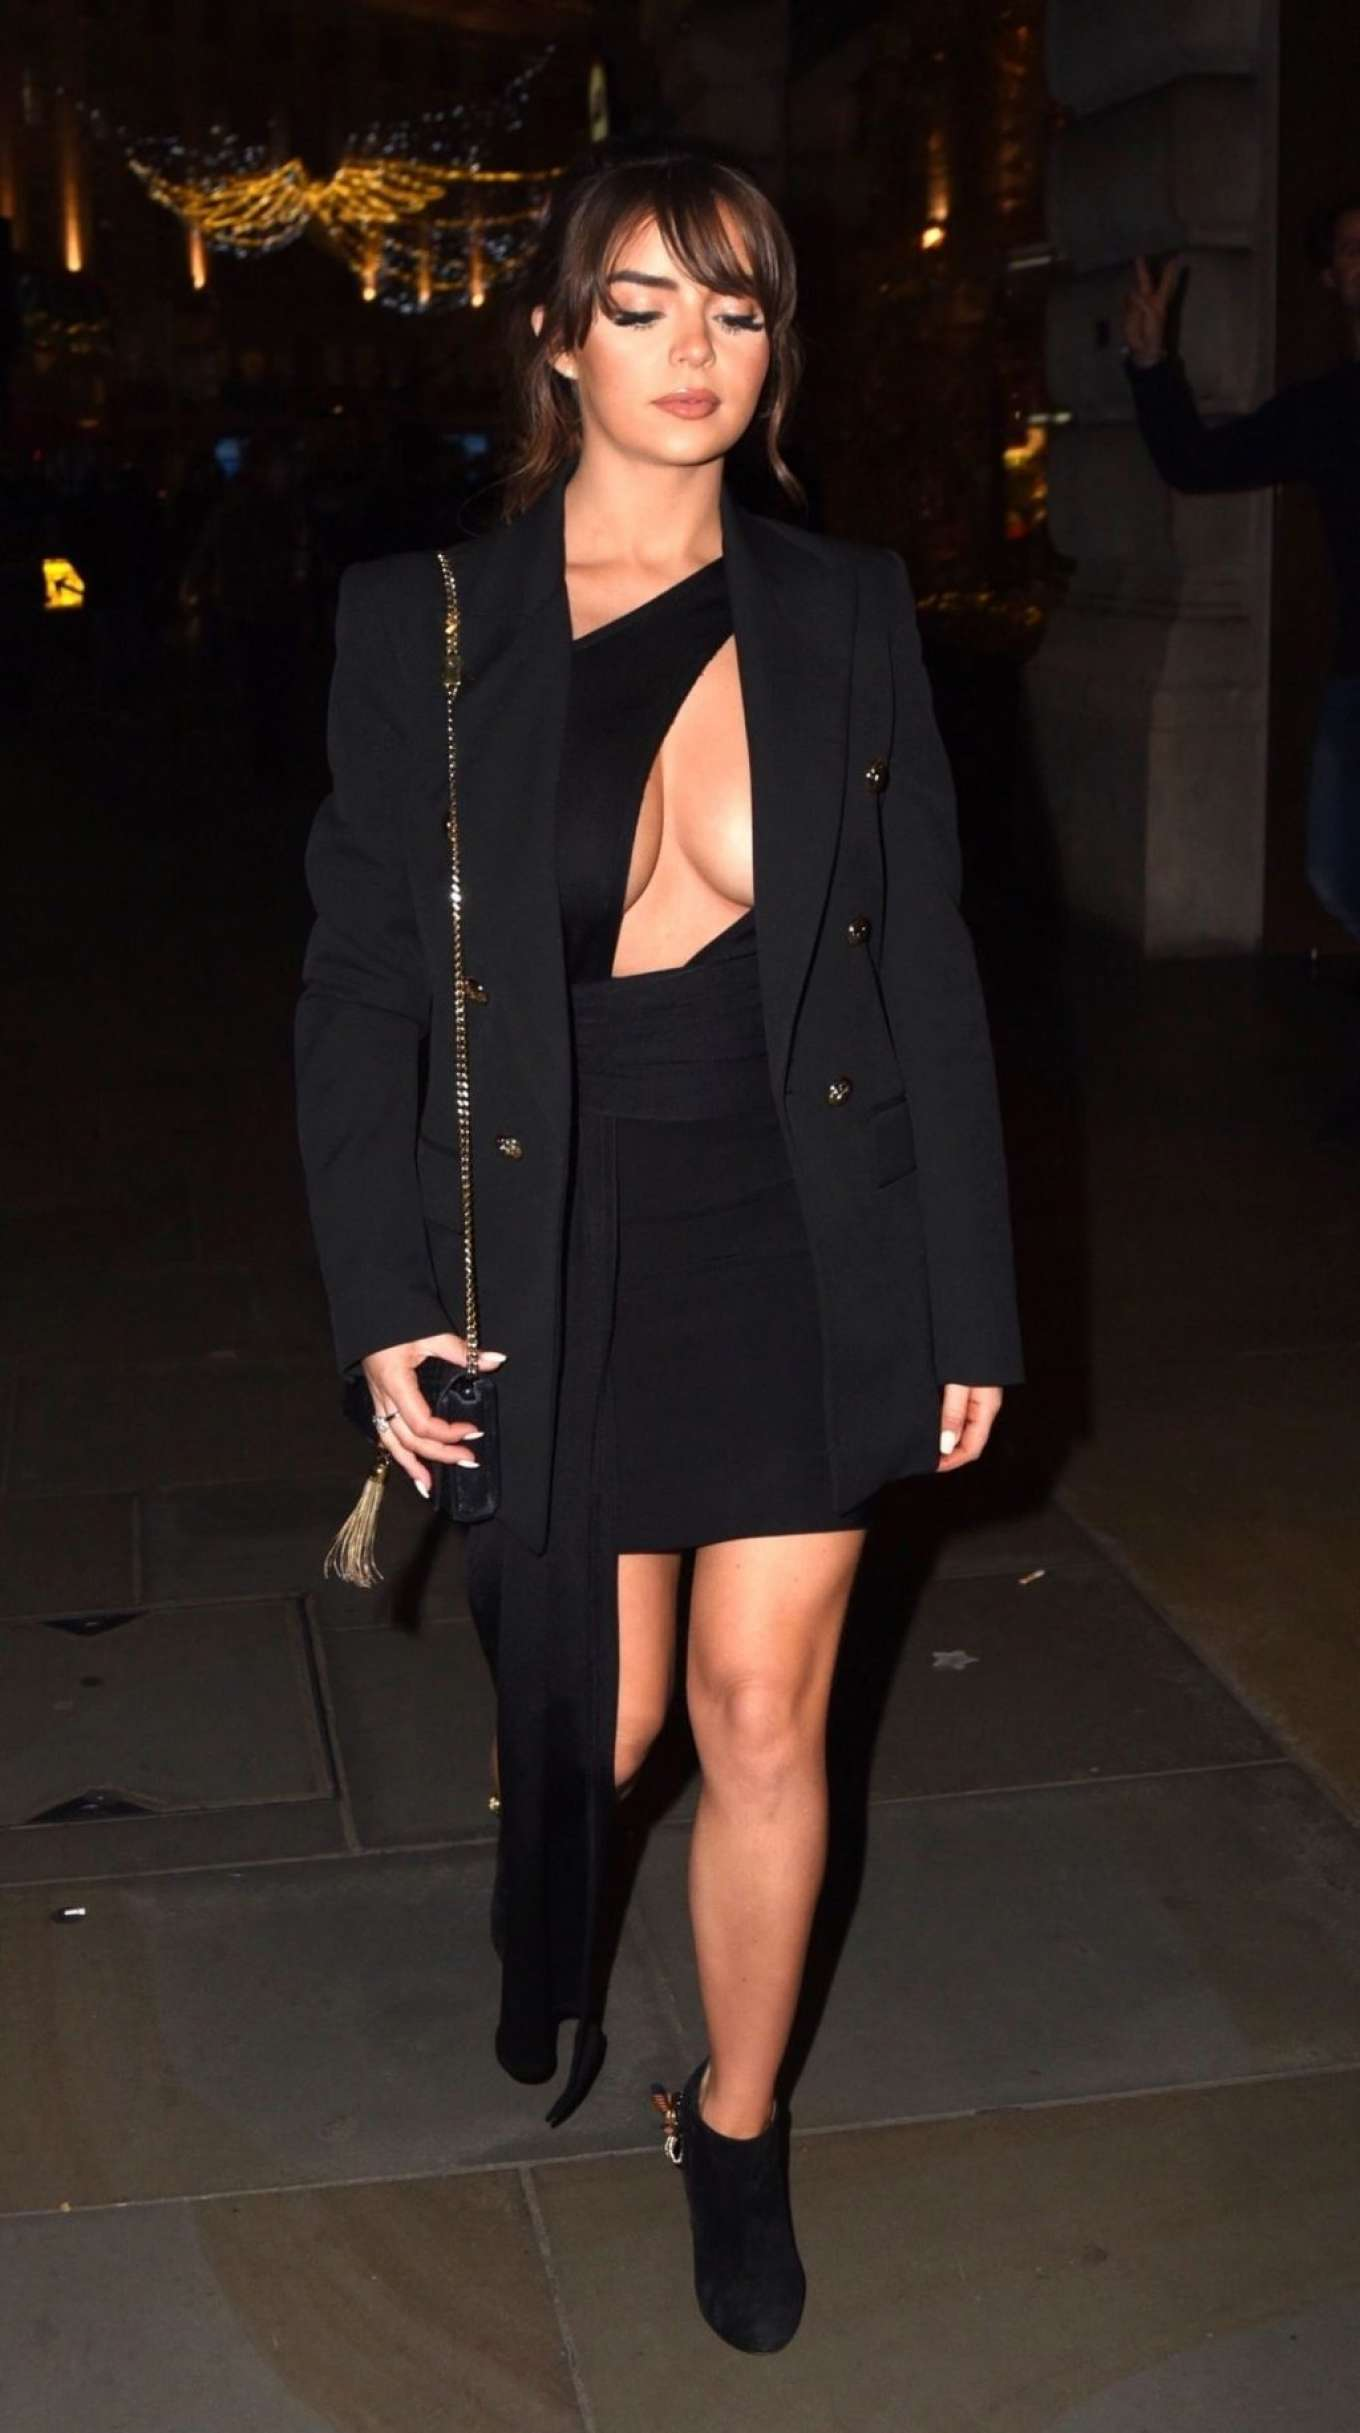 Demi Rose Mawby 2019 : Demi Rose Mawby was pictured while arriving at Cafe Royal in London-01